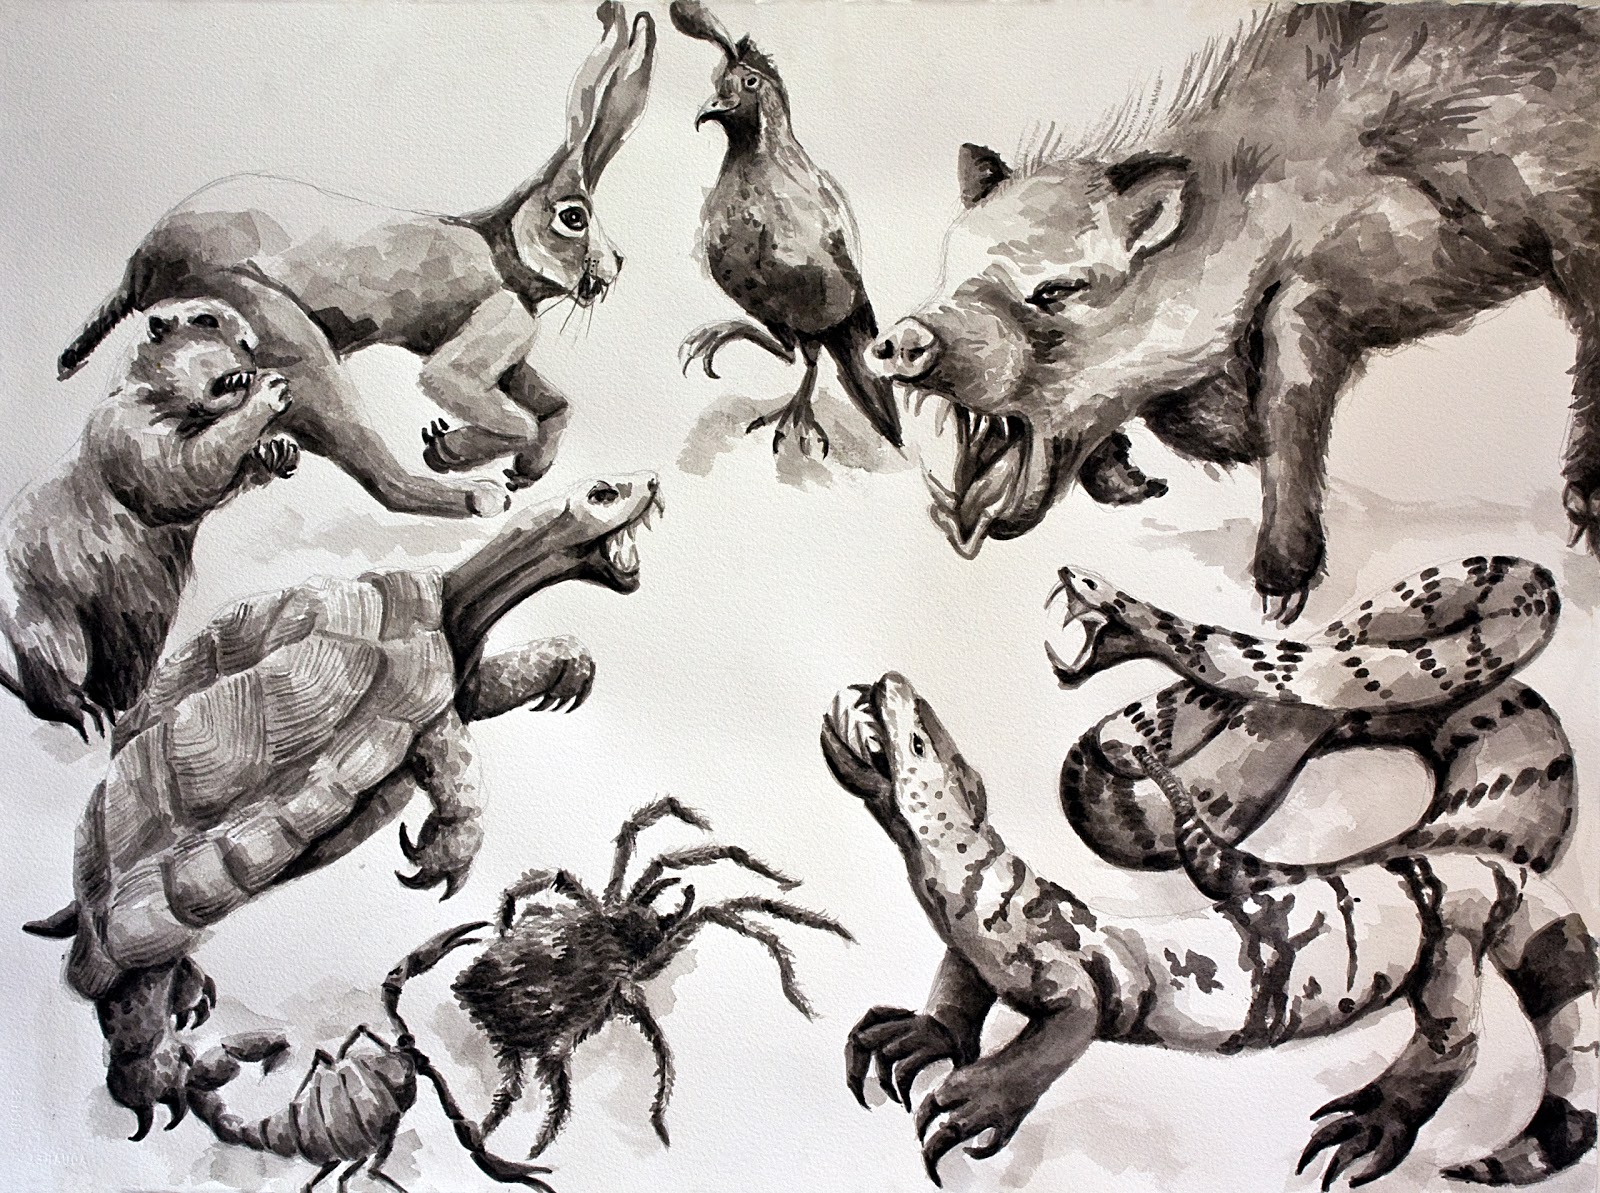 Line Drawing Of Desert Animals : Desert animals drawing at getdrawings.com free for personal use